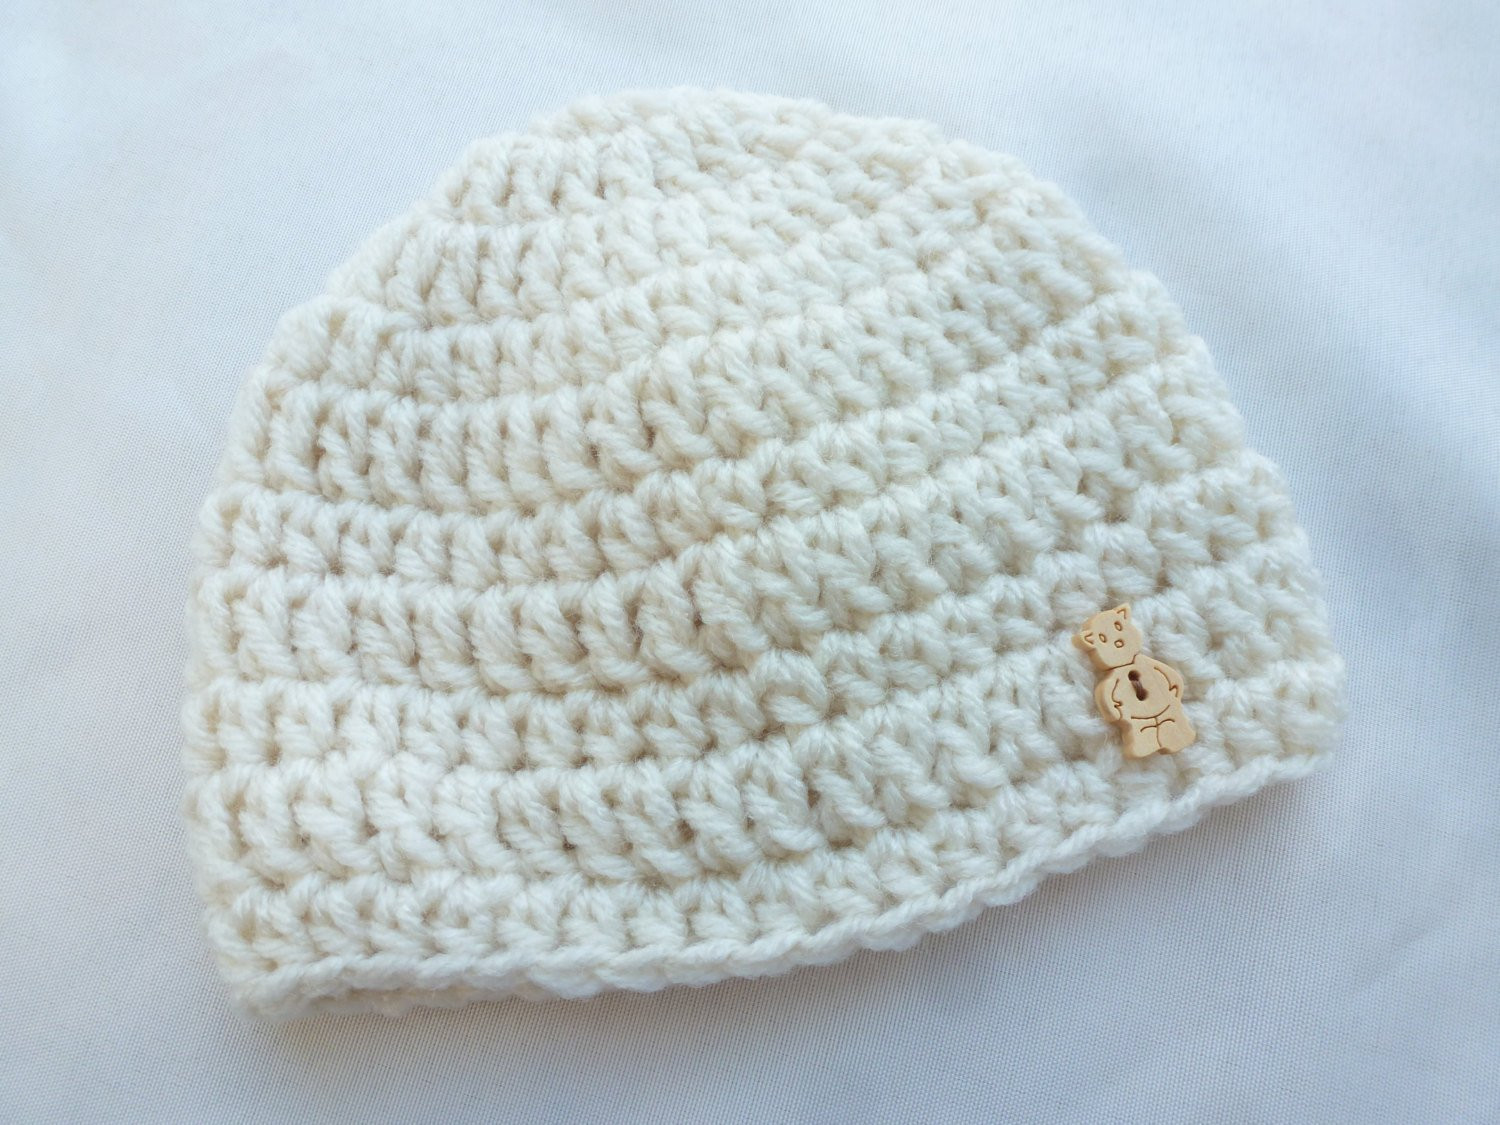 Crochet Newborn Beanie Best Of Newborn Baby Boy Beanie Crochet Baby Hat Cream with Teddy Of Luxury 43 Pictures Crochet Newborn Beanie